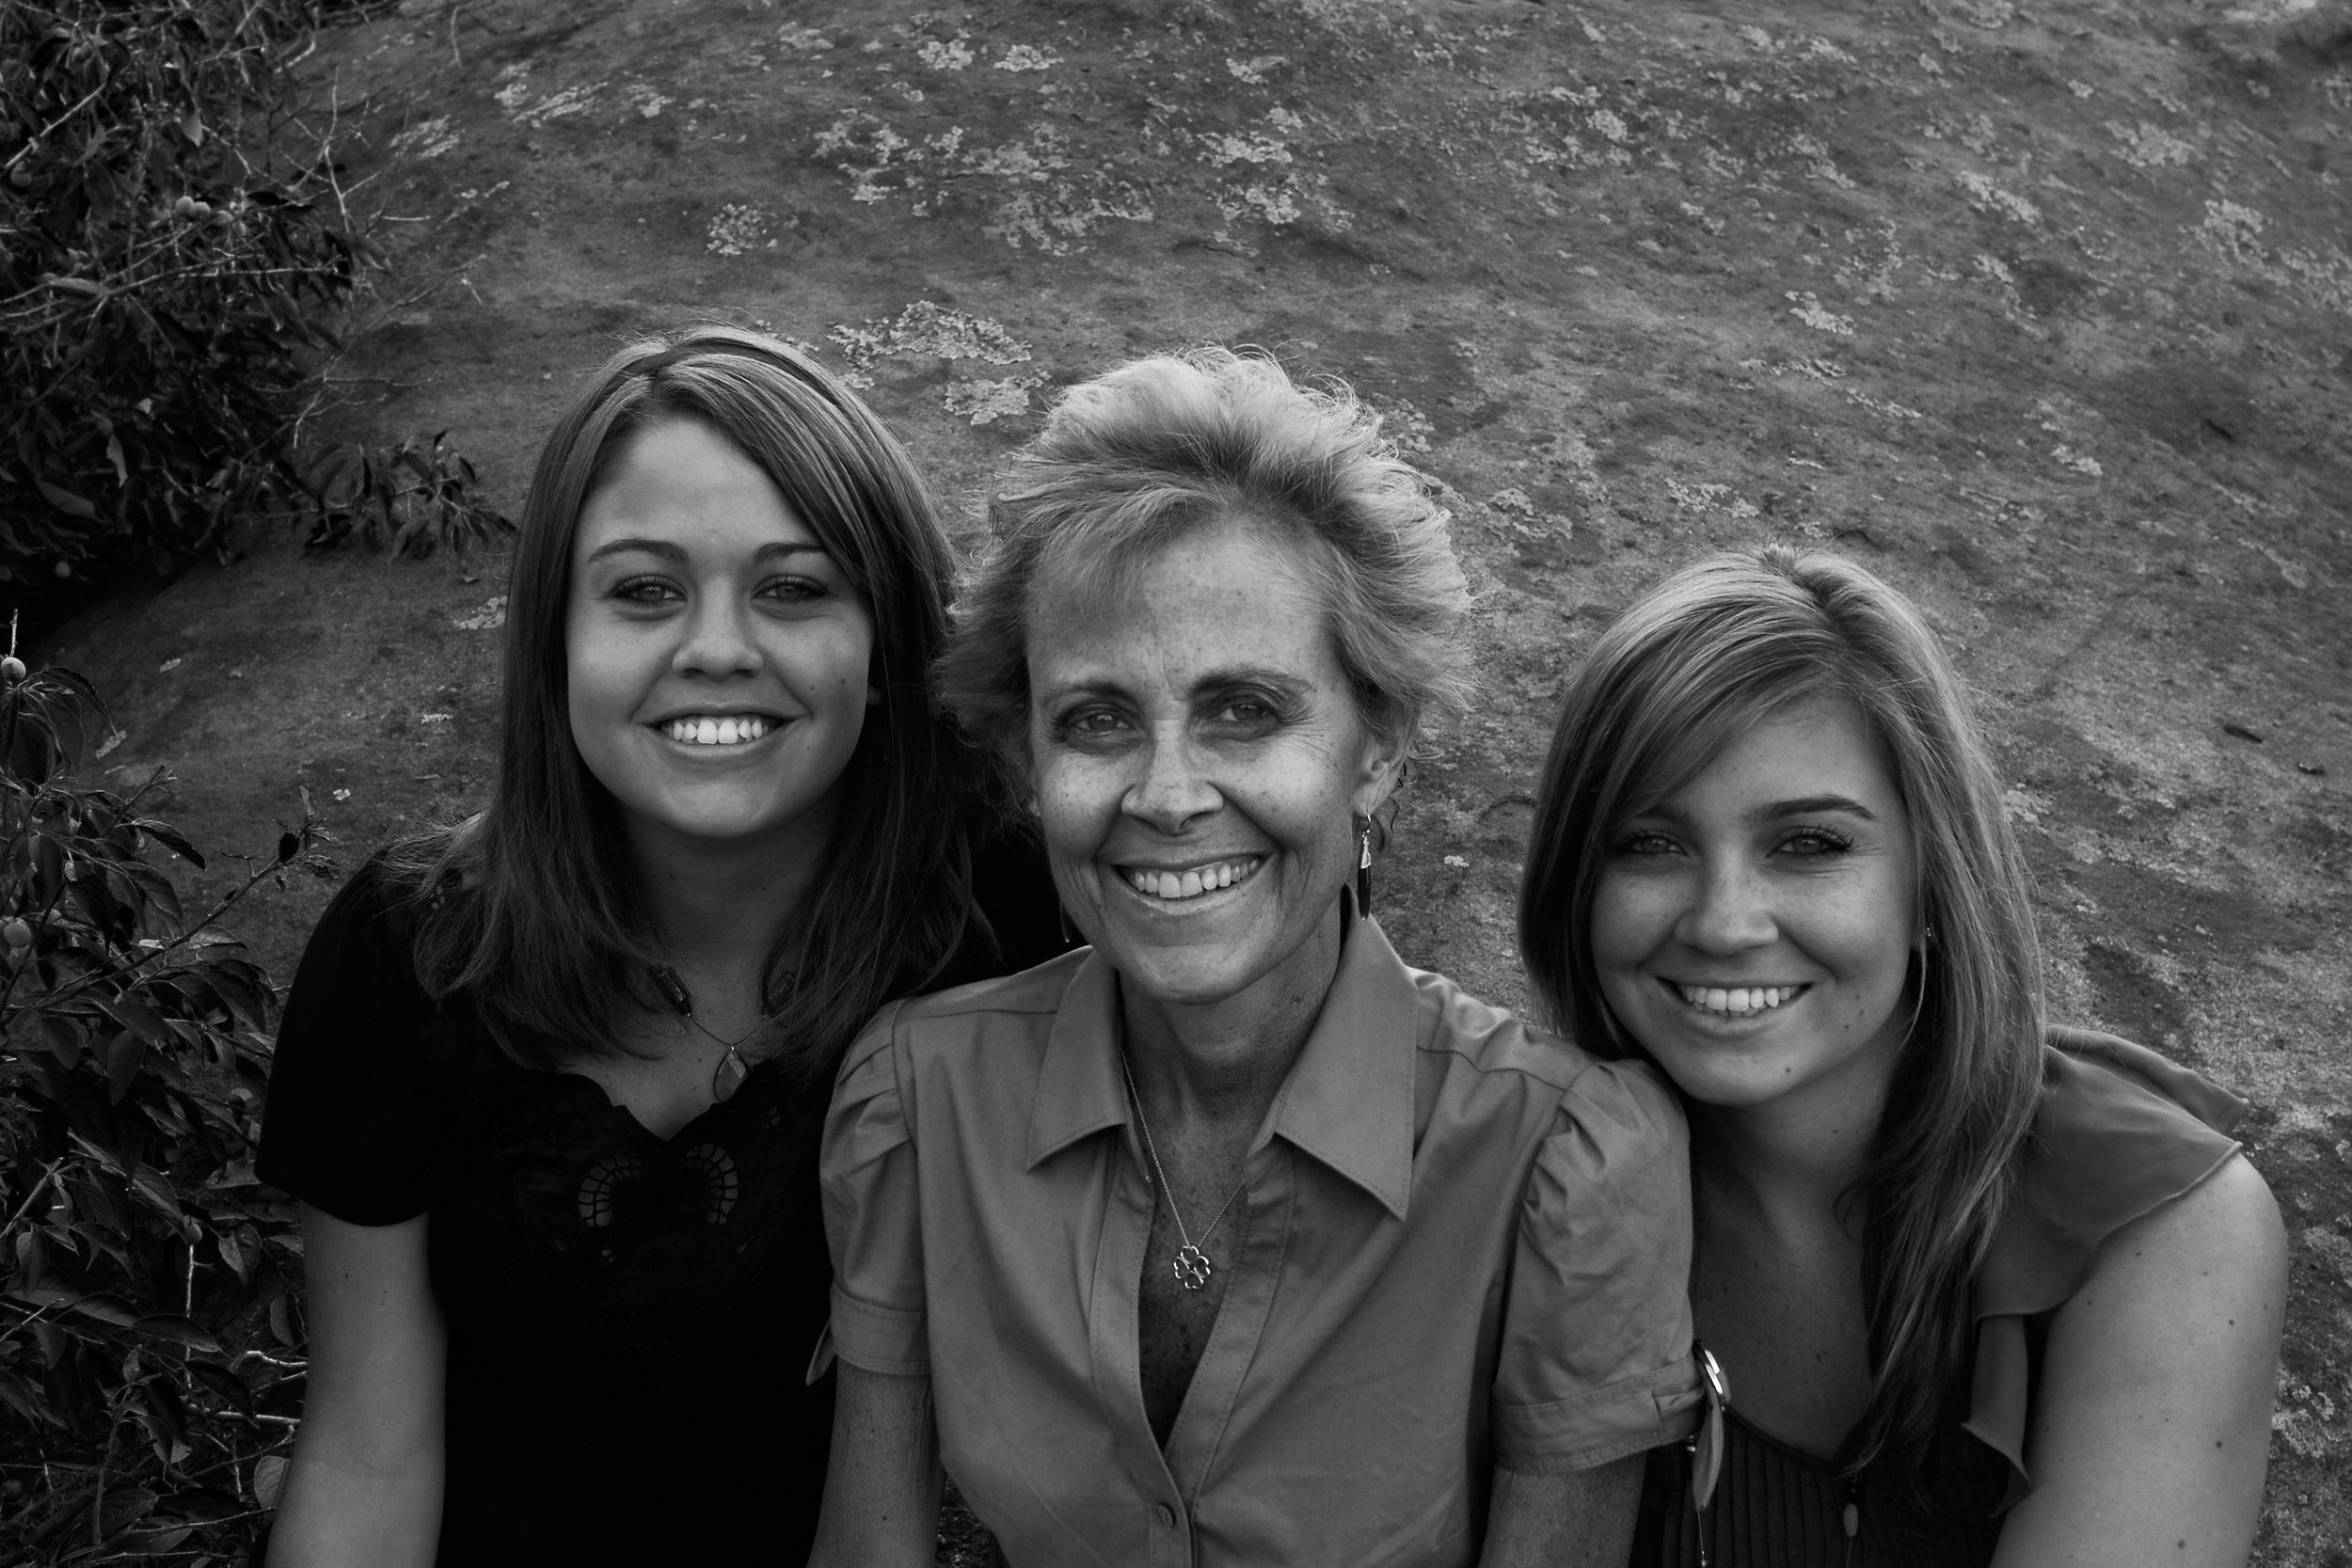 Fall 2009 - Cassie, Pam, and Lexie